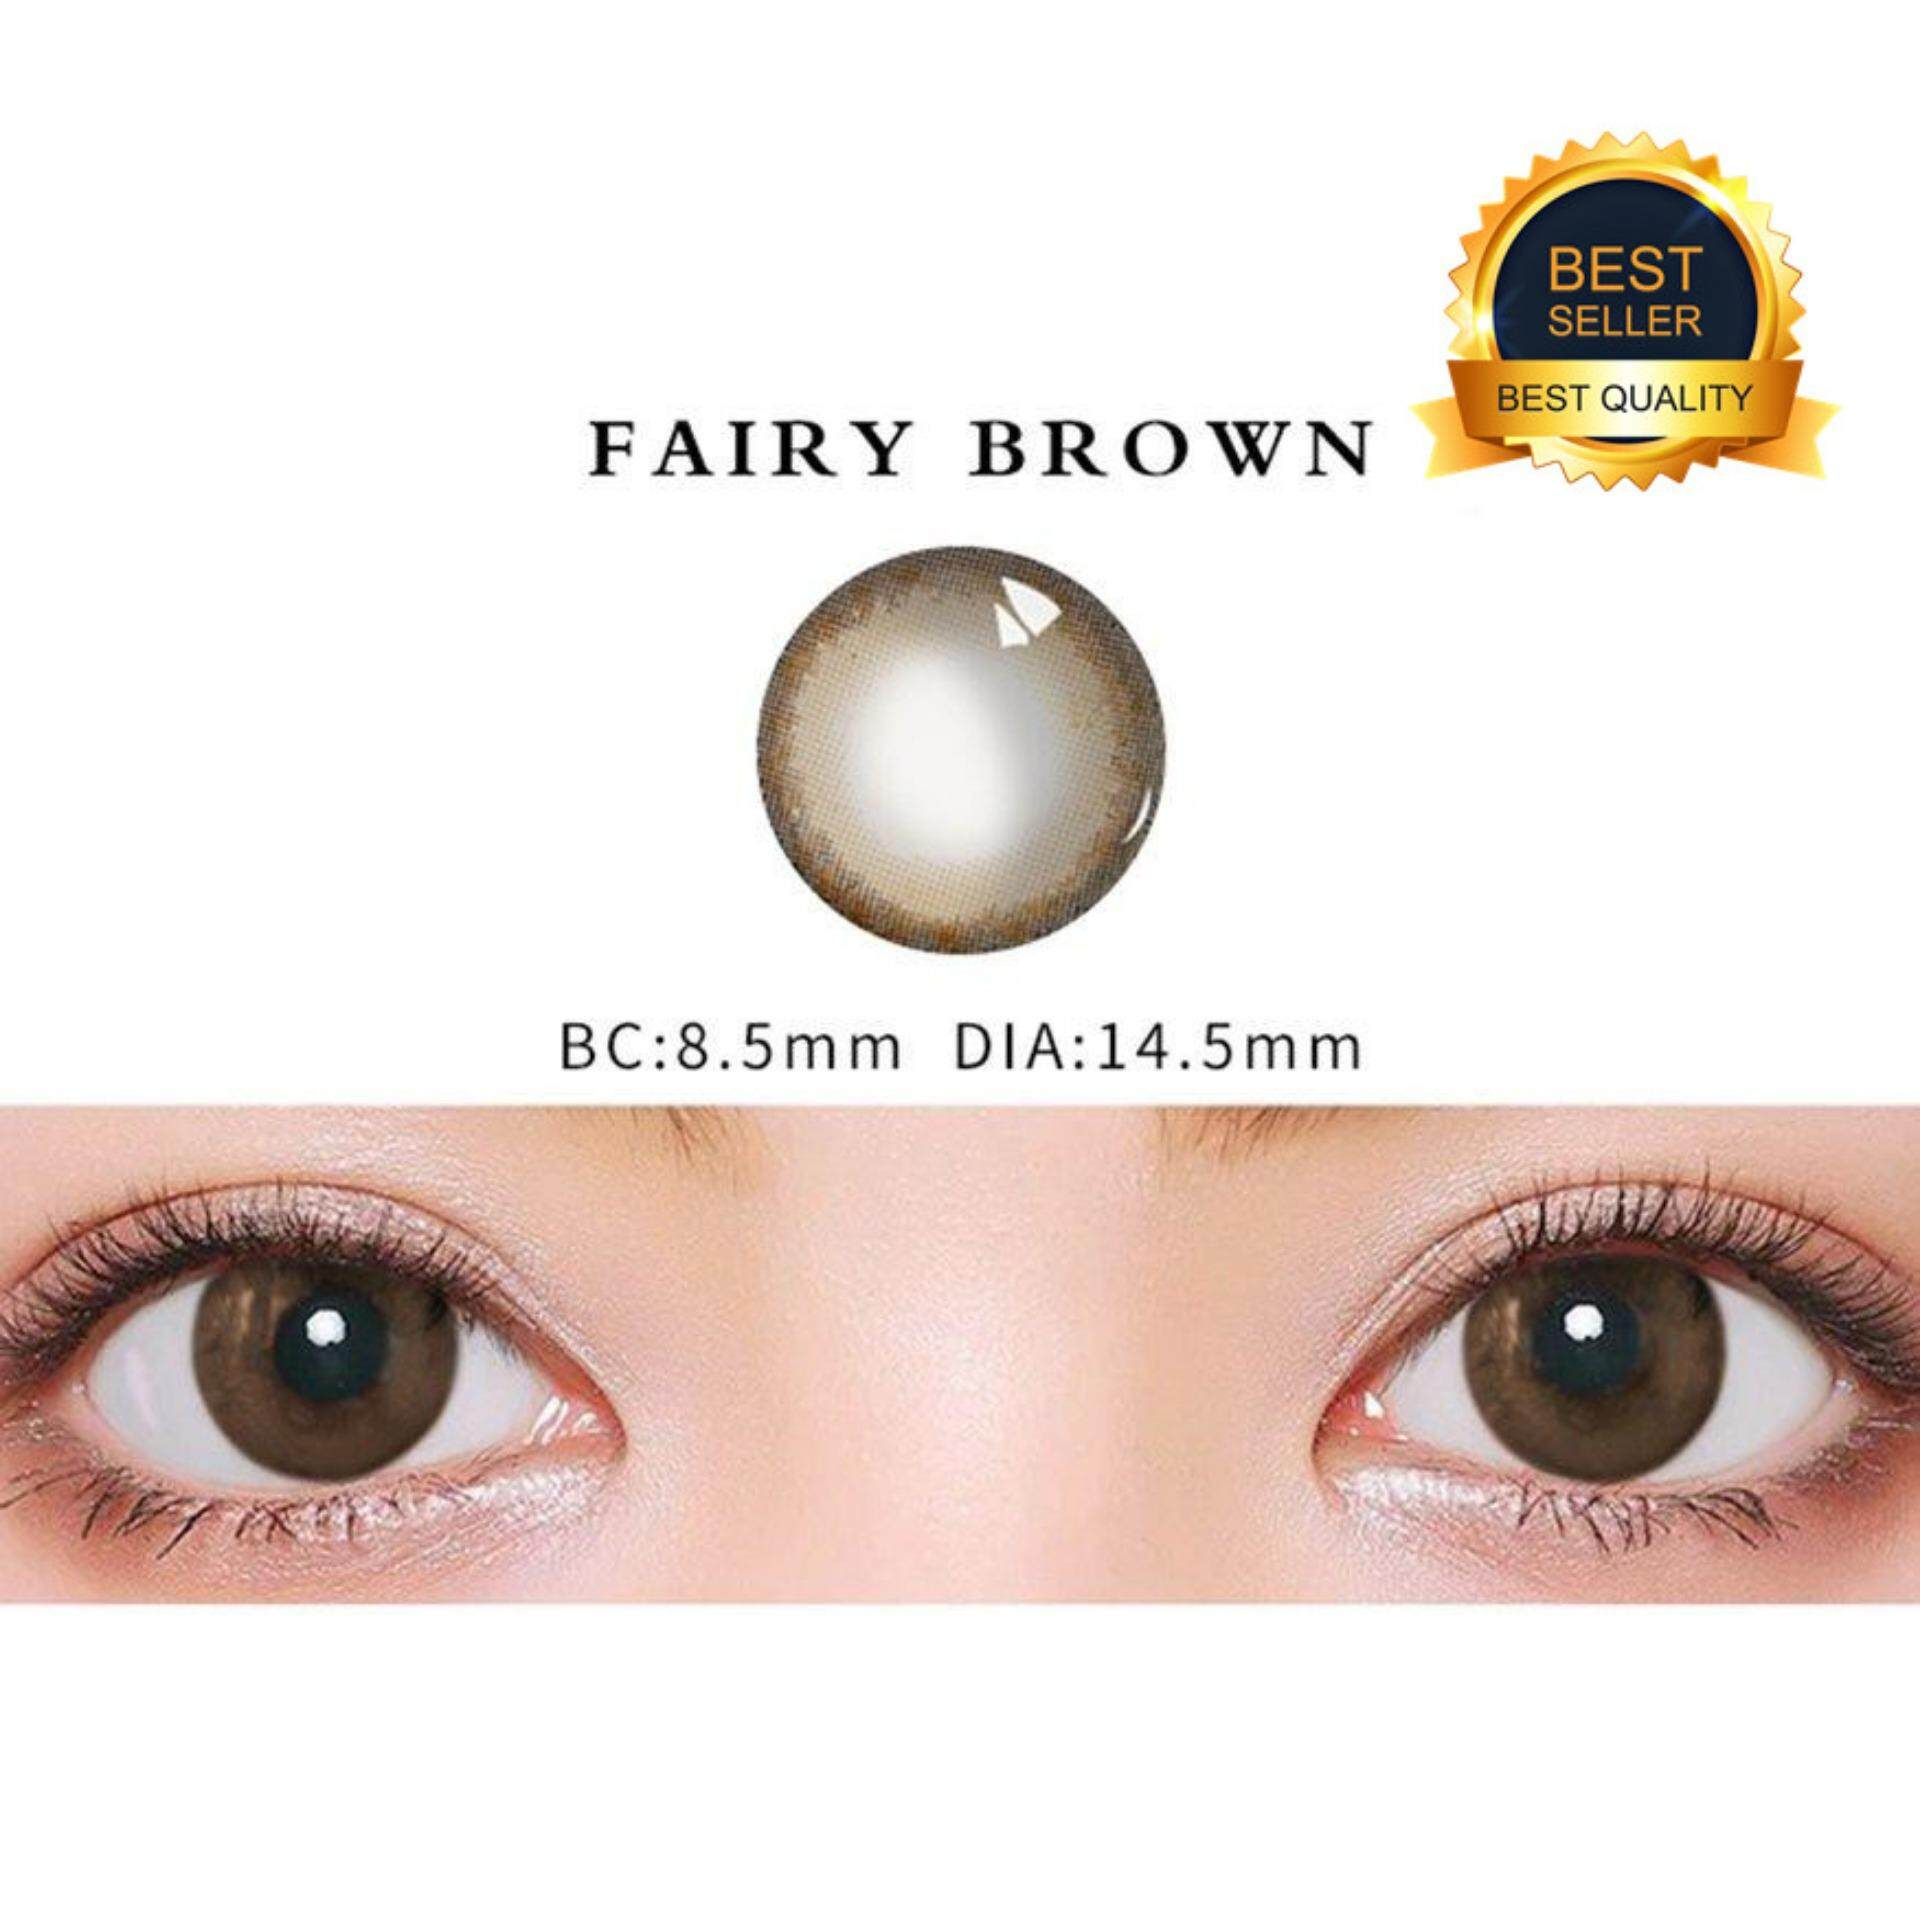 Top Deals Women Multicolor Contact Lens Charm And Attractive Fashion Makeup Eye Lens By Legendseller.